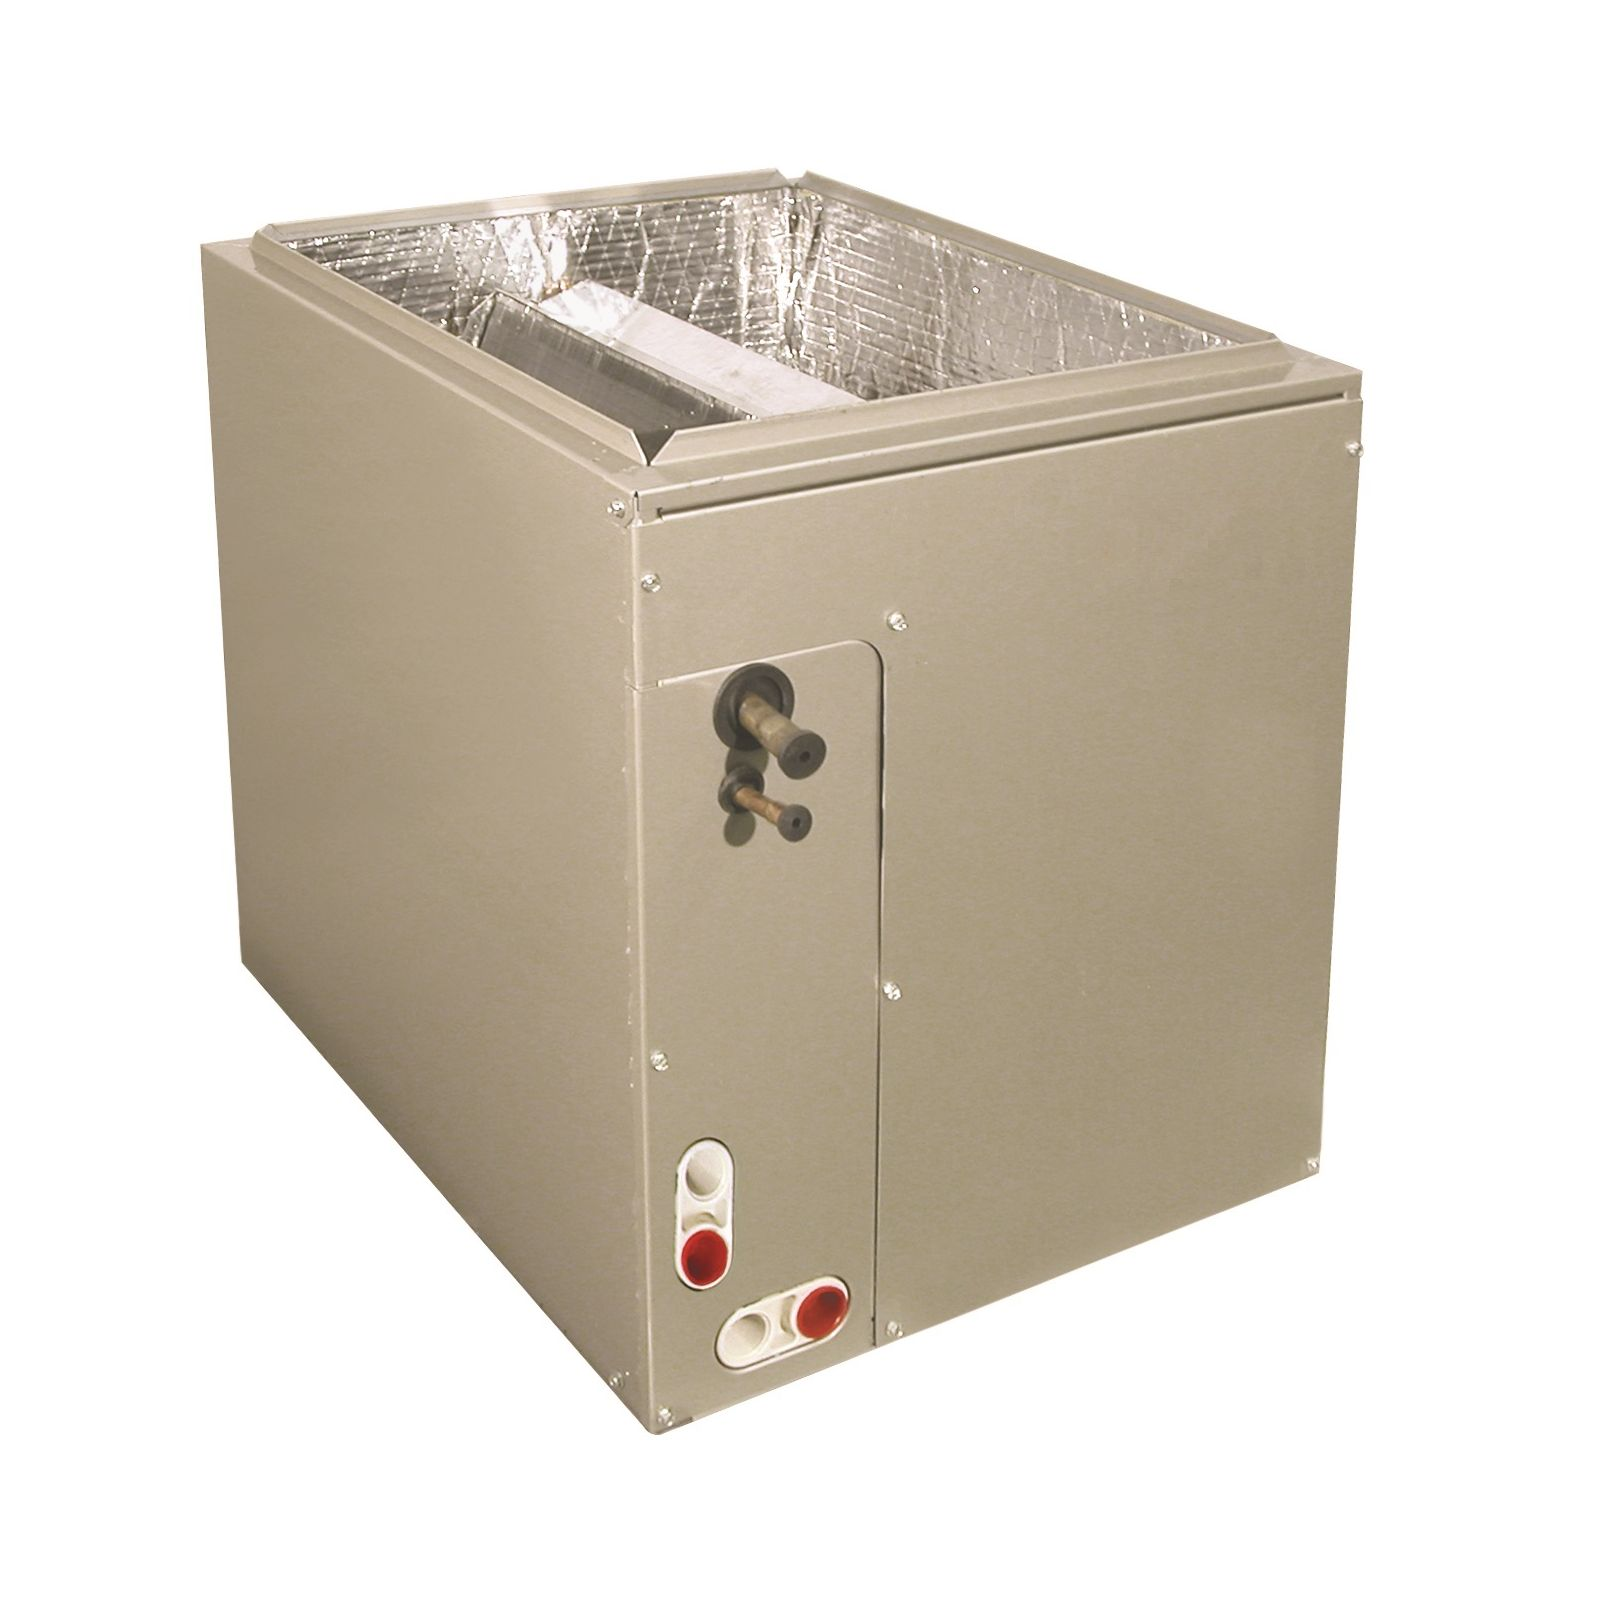 "Tempstar EAM4X42L21A - 3 1/2 Ton R410A Multi-position Cased Evaporator Coil 21"" Wide With TXV, Aluminum Tube and Fins"